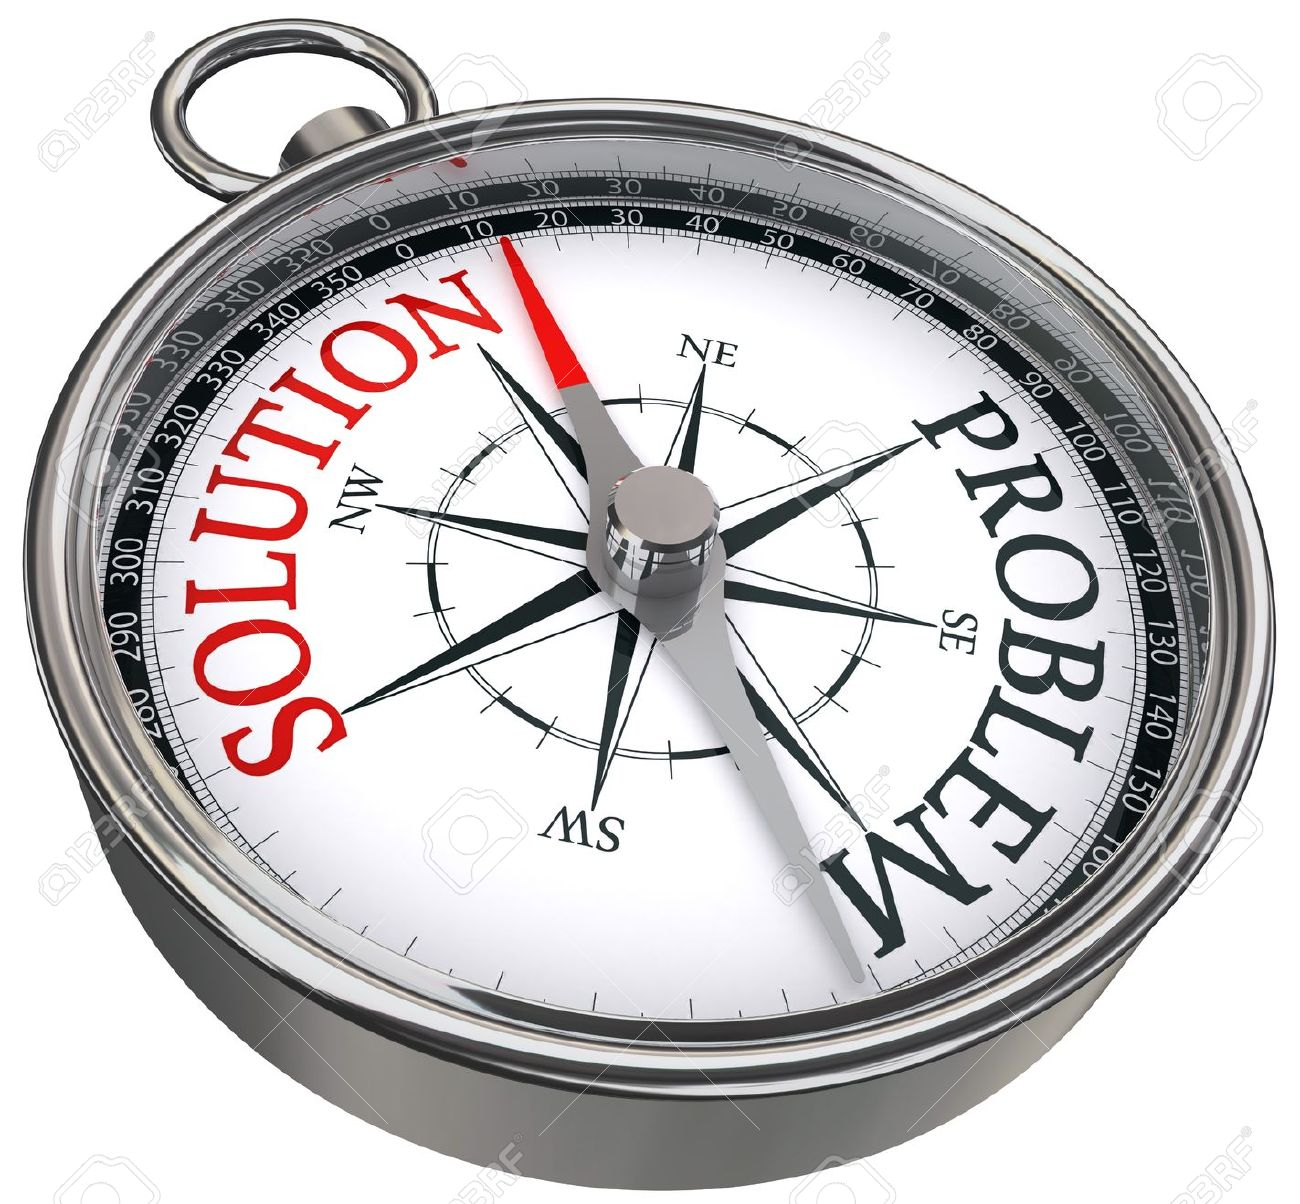 red solution vs black problem opposite ways concept compass isolated on white background Stock Photo - 10941399